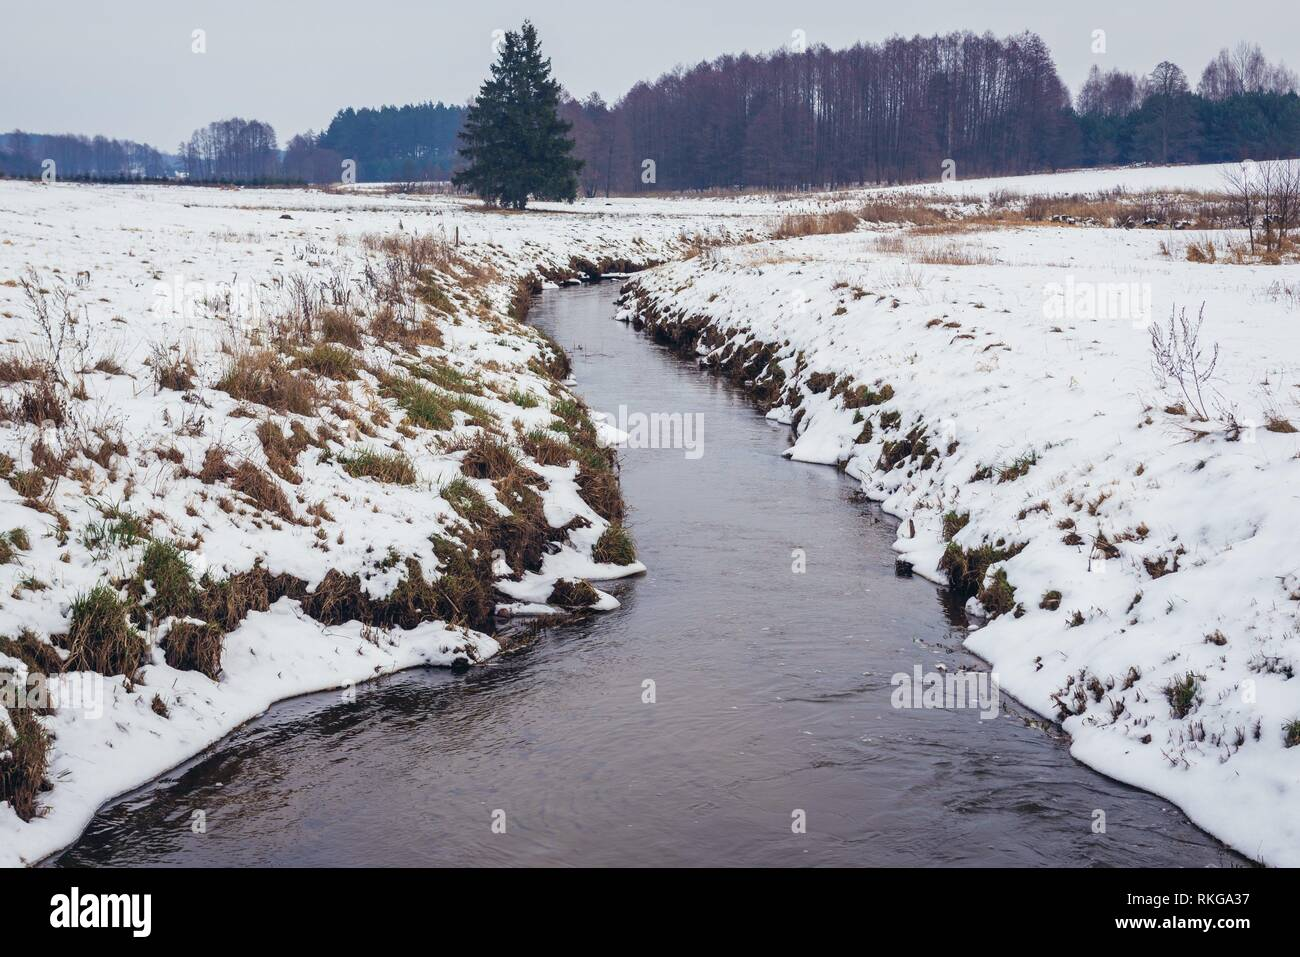 Rudnia river in Soce village on so called The Land of Open Shutters trail, famous for traditional architecture in Podlaskie Voivodeship, Poland. - Stock Image